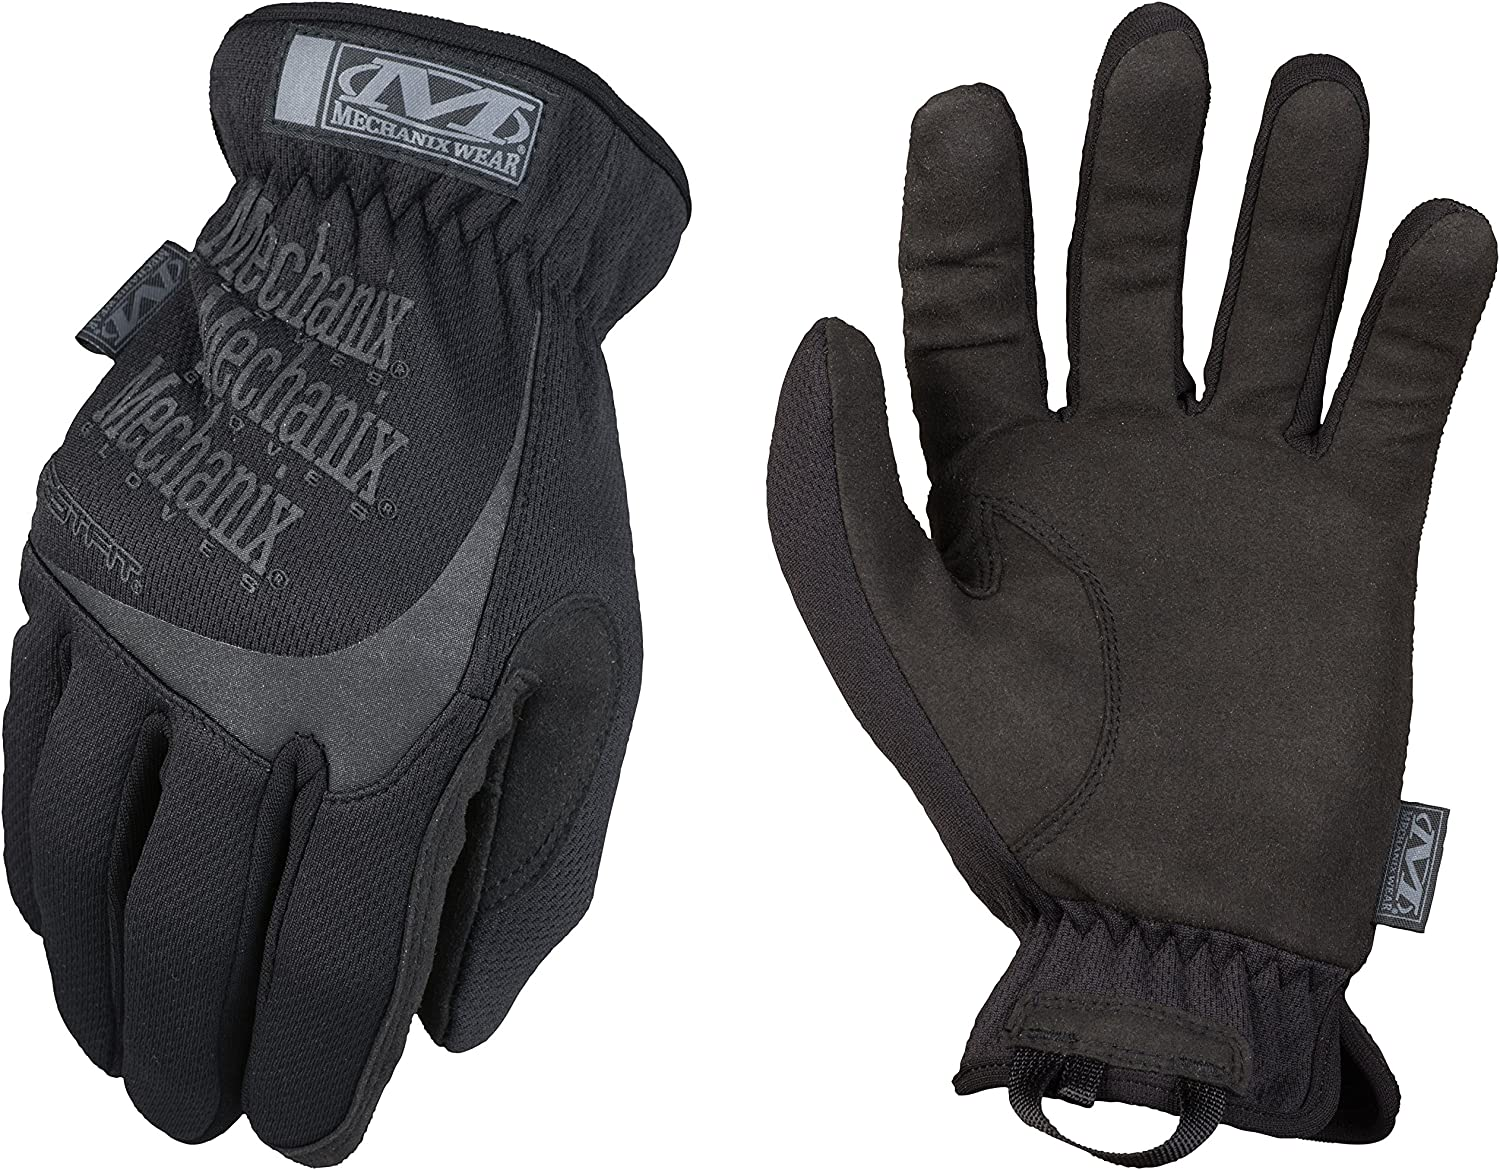 FastFit Covert Tactical Gloves Mechanix Wear X-Large, Black